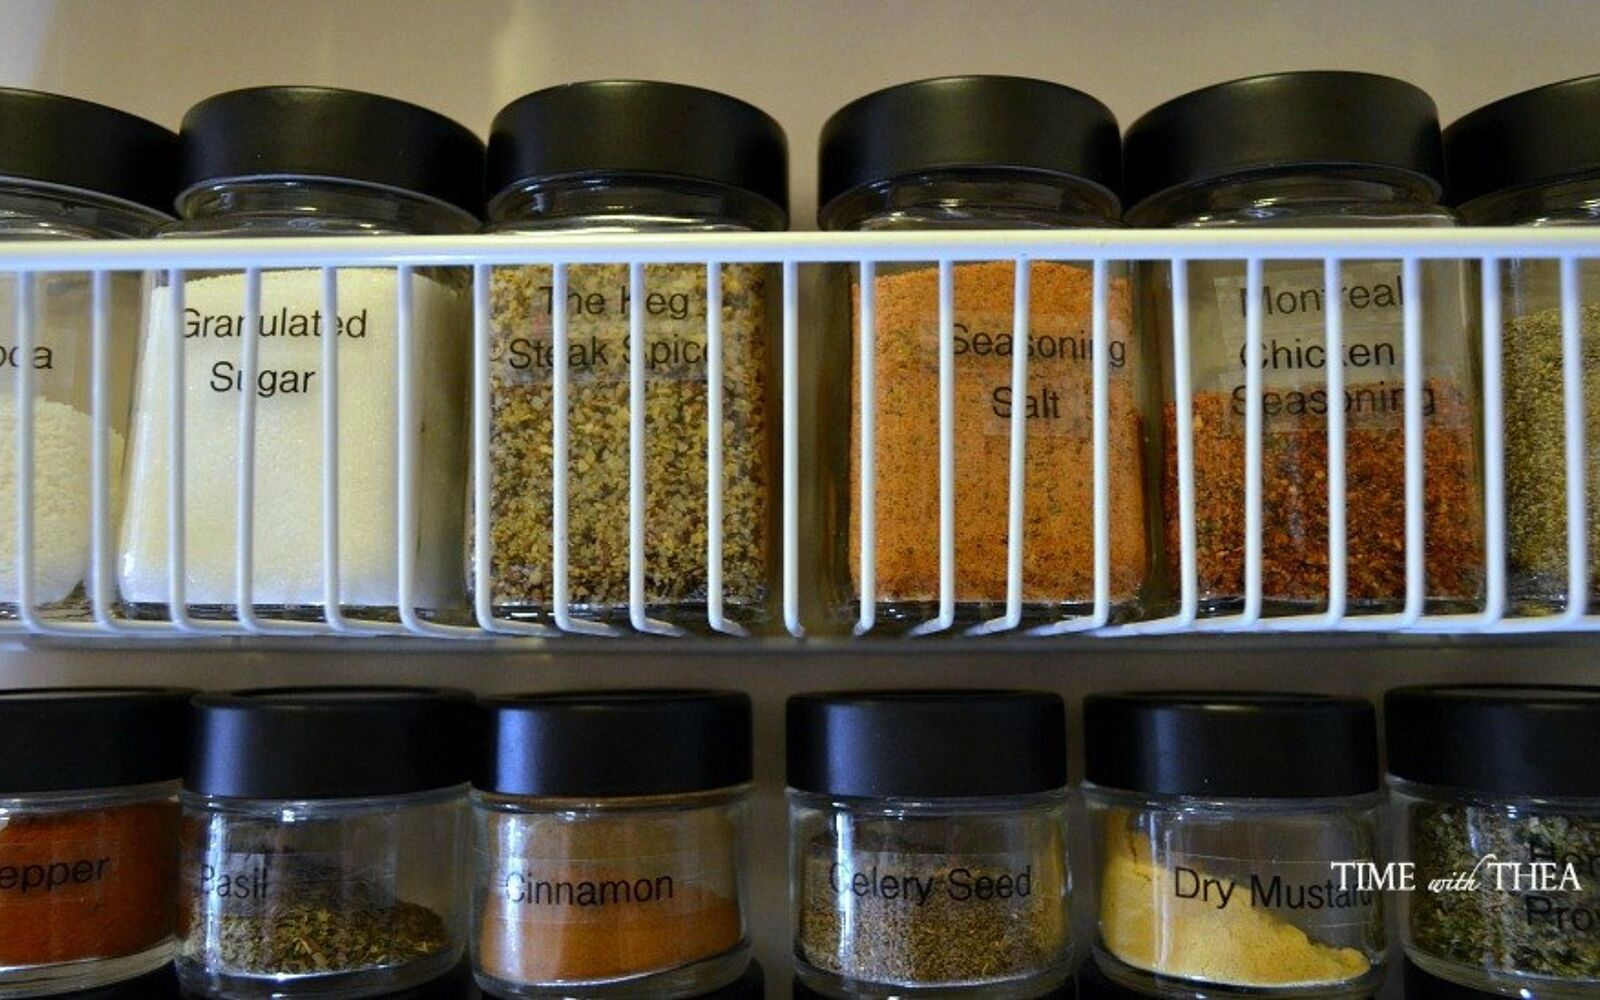 s 32 space saving storage ideas that ll keep your home organized, Use jars to organize your spices